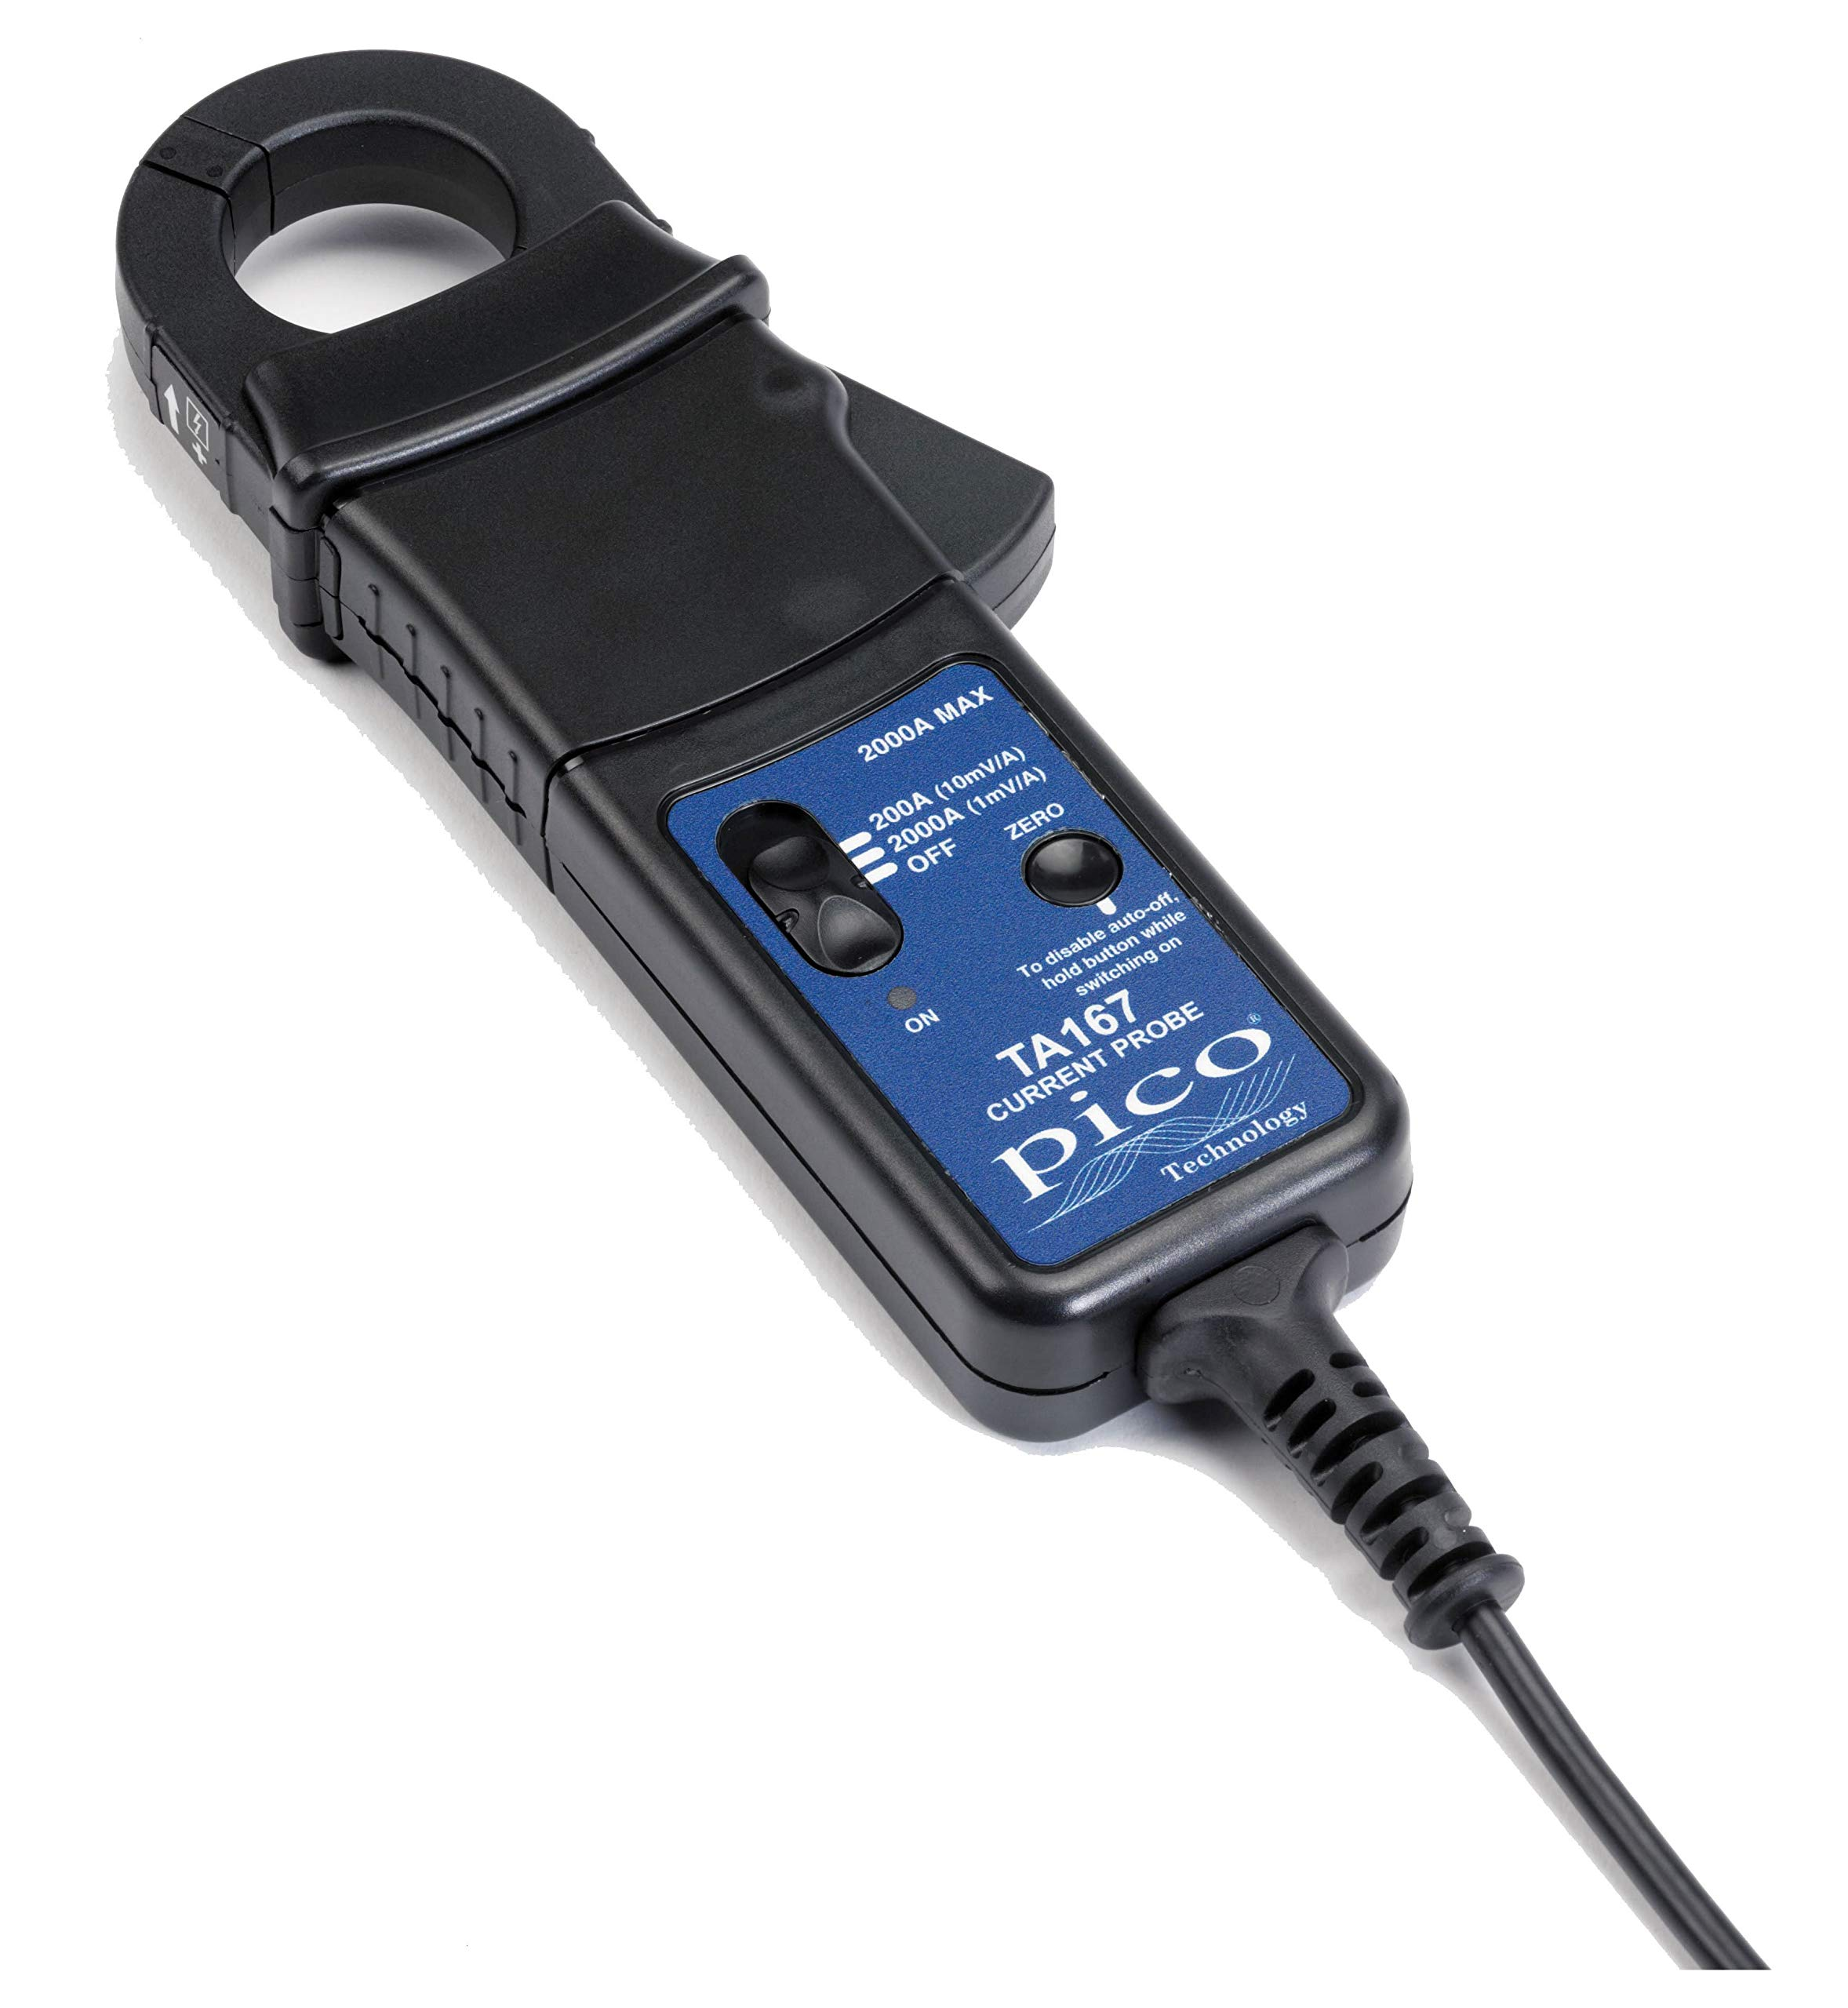 PICO TECHNOLOGY TA167 PROBE, CURRENT, OSCILLOSCOPE by Pico (Image #1)